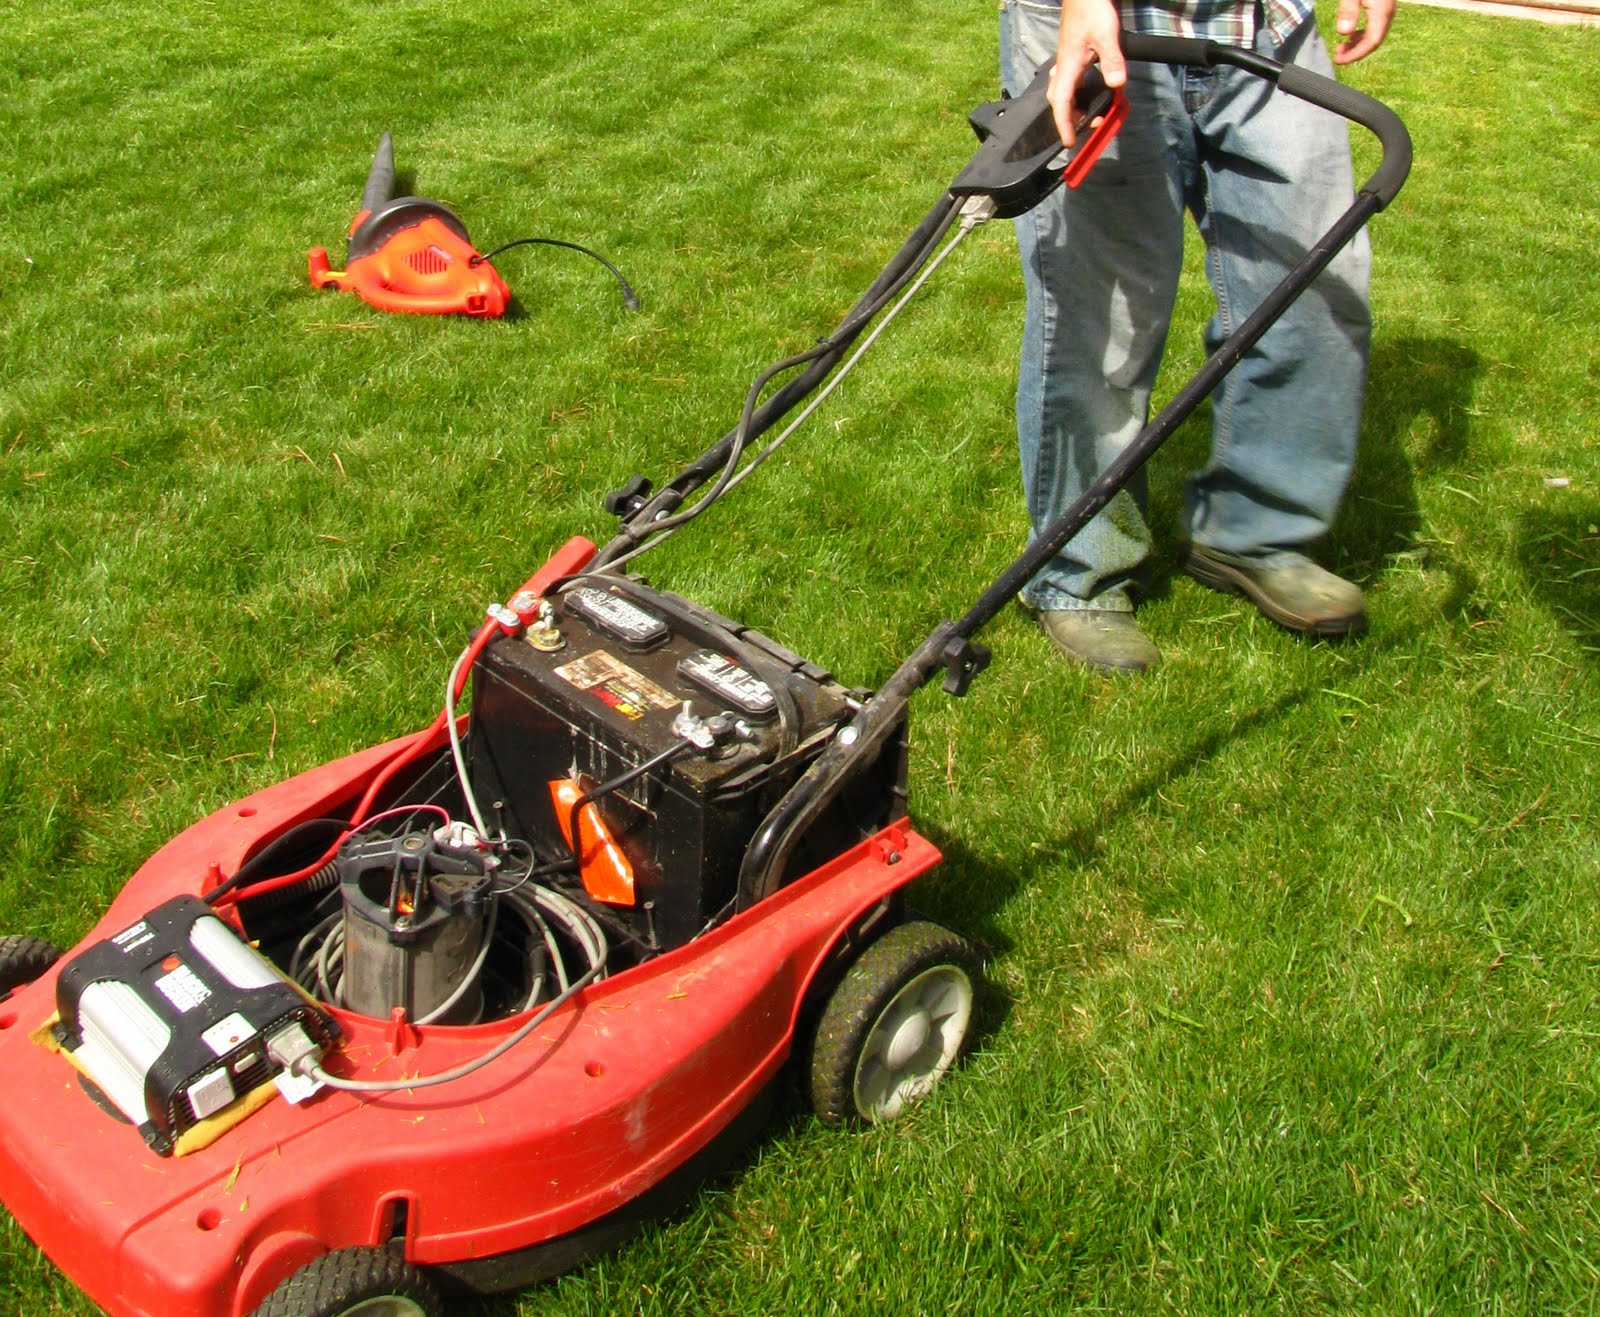 Johns Energy Saving Blog My Electric Lawn Mower Named Frankenstein